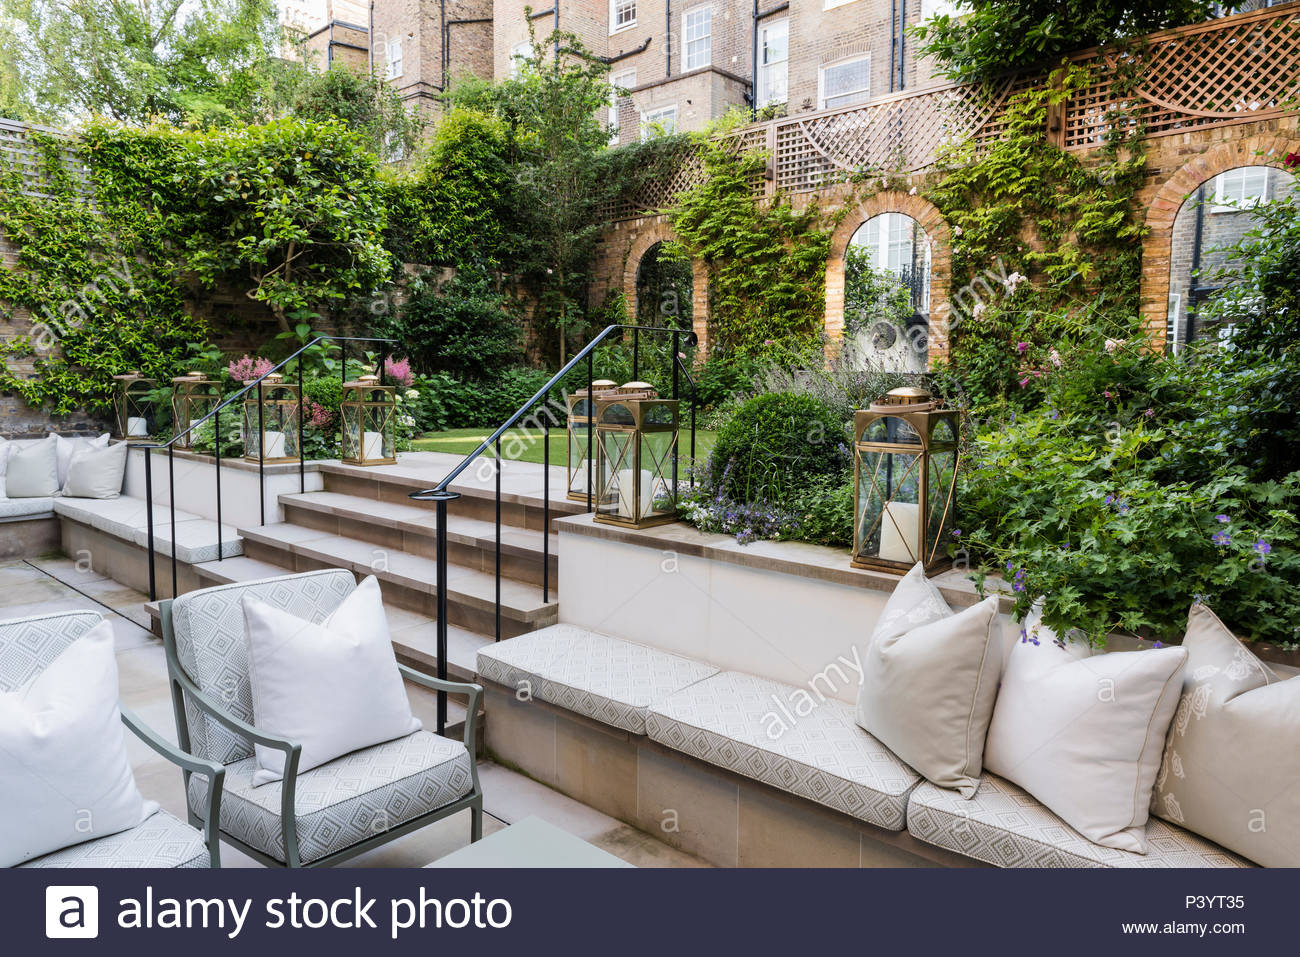 Outdoor Seating In Sunken Patio, Landscaped Garden